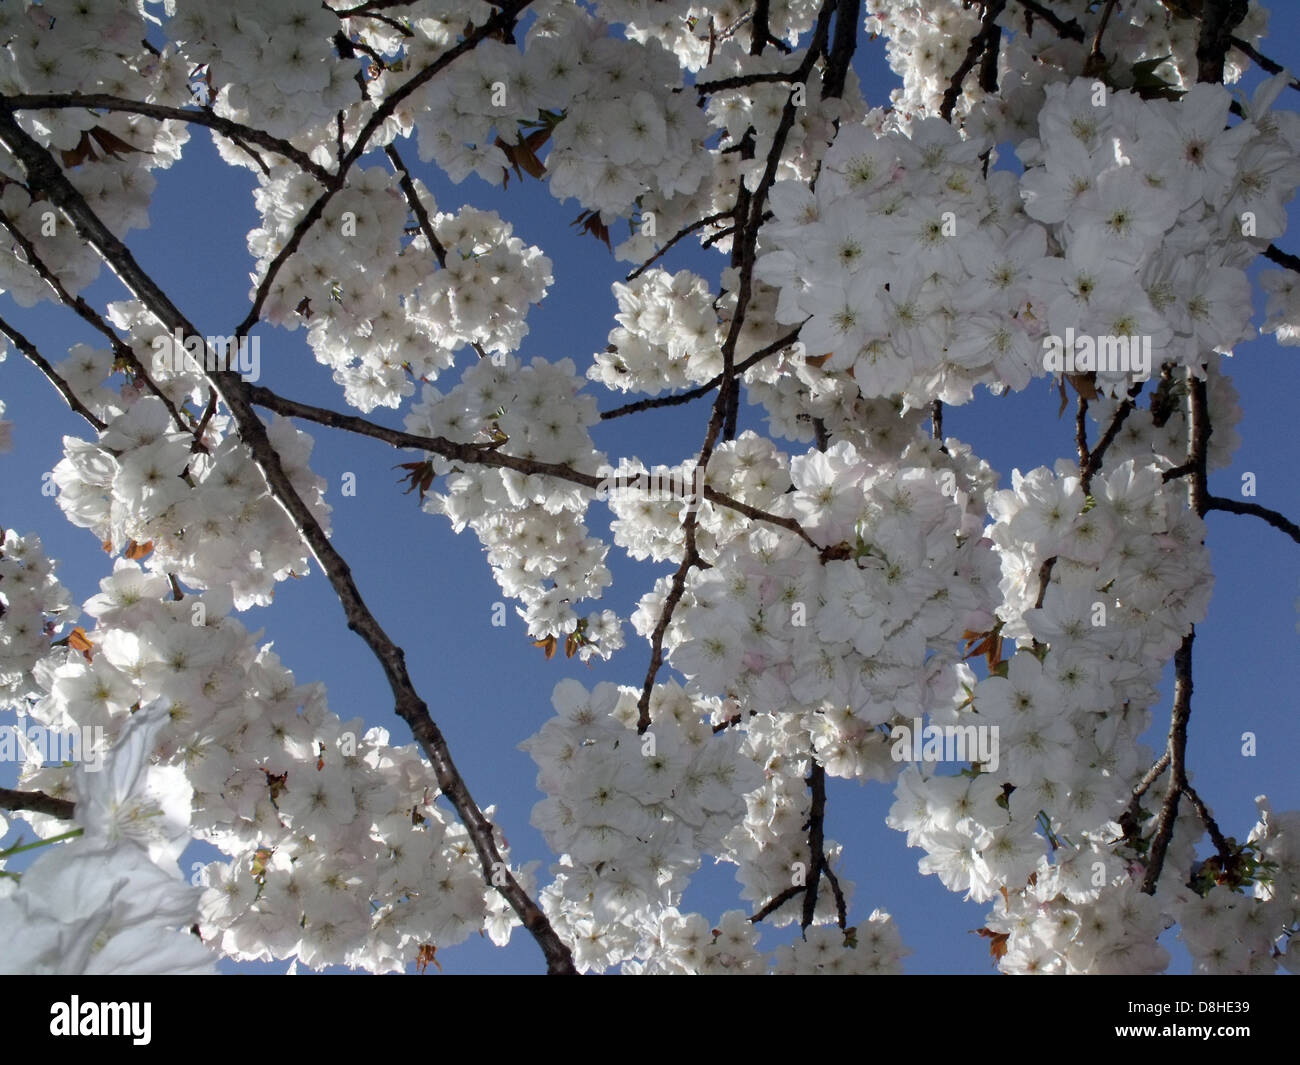 nature,natural,flower,flowers,blossom,blossoms,bloom,blooming,smell,sweet,of,Sakura,cultivated,for,ornamental,use,do,not,produce,fruit,tree,trees,shrub,shrubs,Hanami,Prunus,avium,and,Prunus,cerasus.,beige,cream,creme,color,colour,new,life,rebirth,birth,festival,season,sato-sakura,group,sato,gotonysmith,Buy Pictures of,Buy Images Of